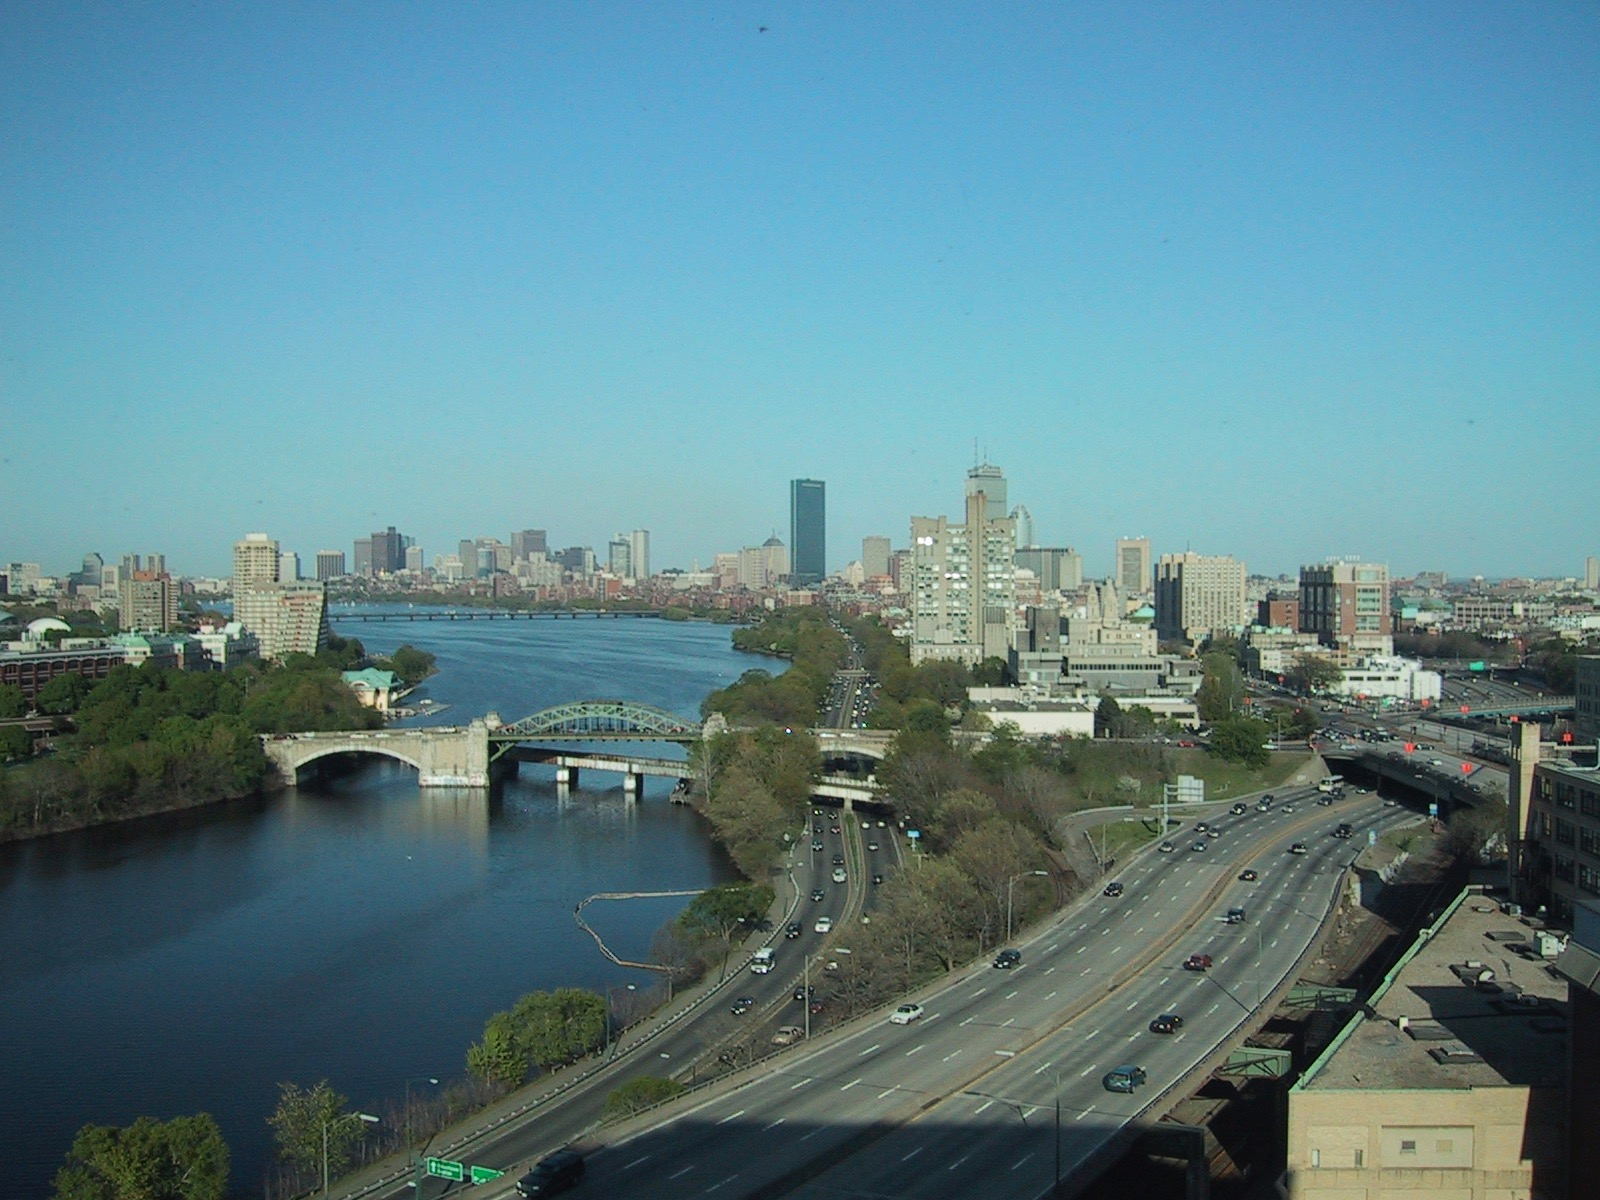 The view from my RA apartment in Boston.